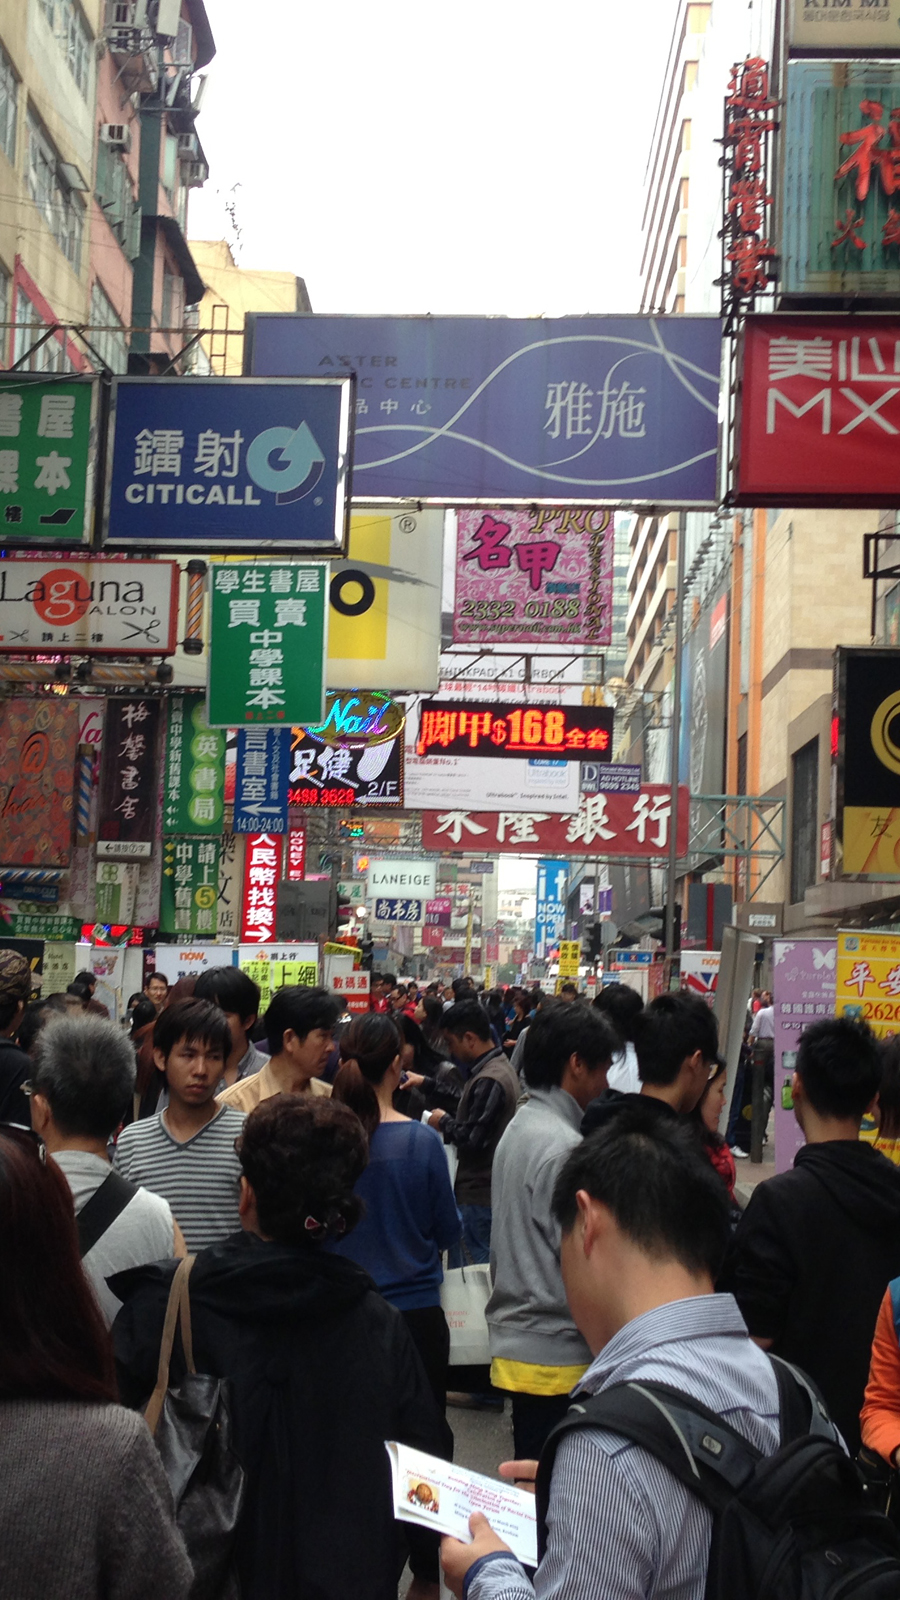 The busy streets of Mong Kok on a Sunday - and the busier signs. They get way busier at night, though.